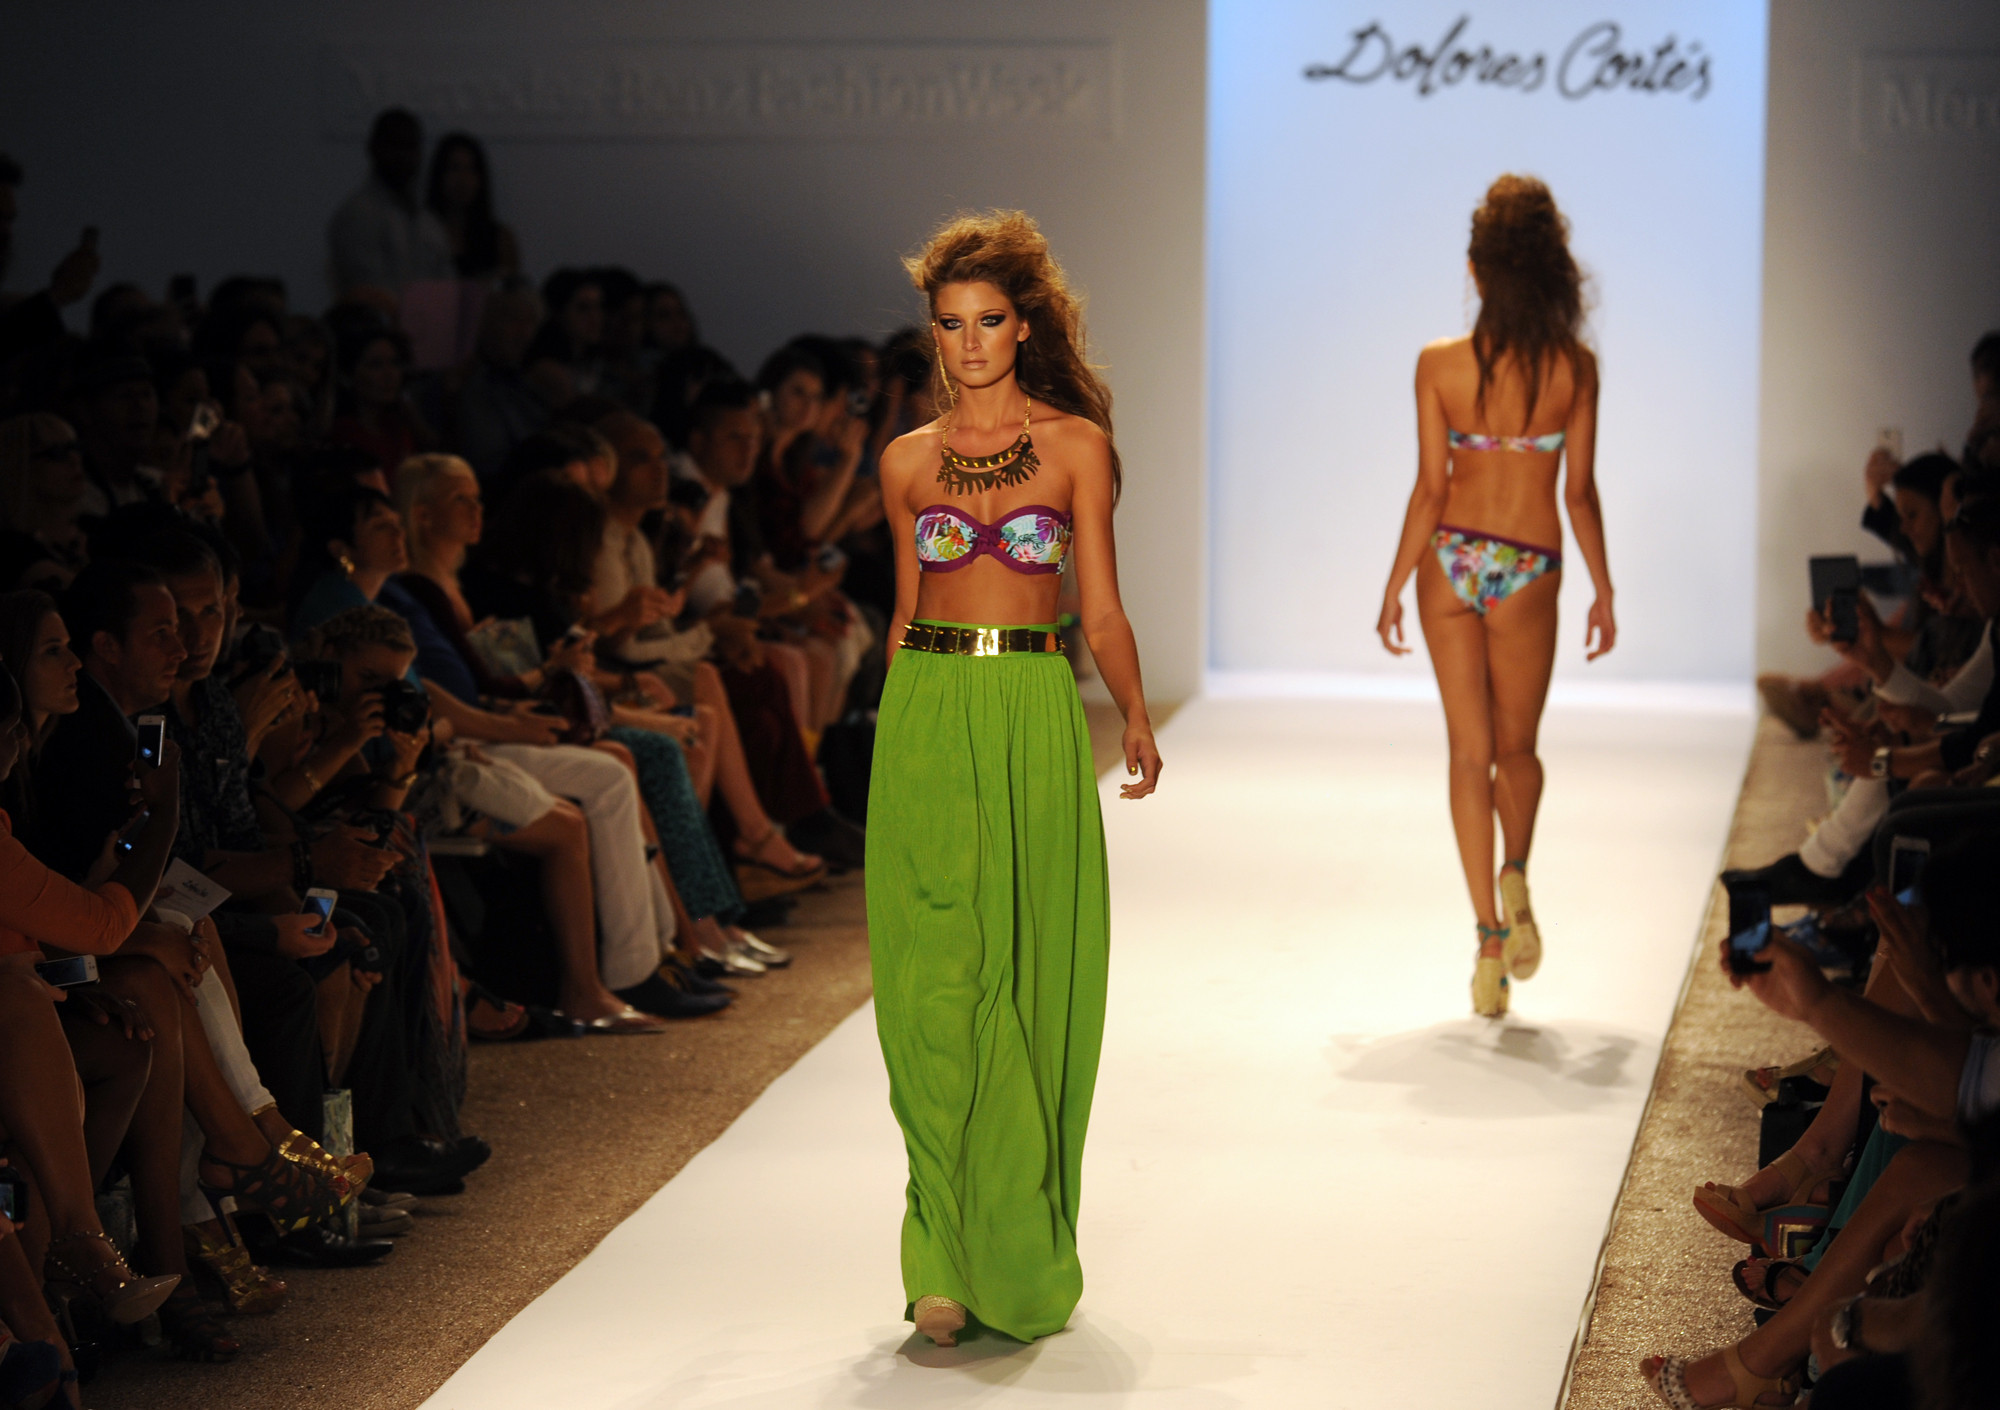 A look back at Miami Swim Week 2013 - Dolores Cortes